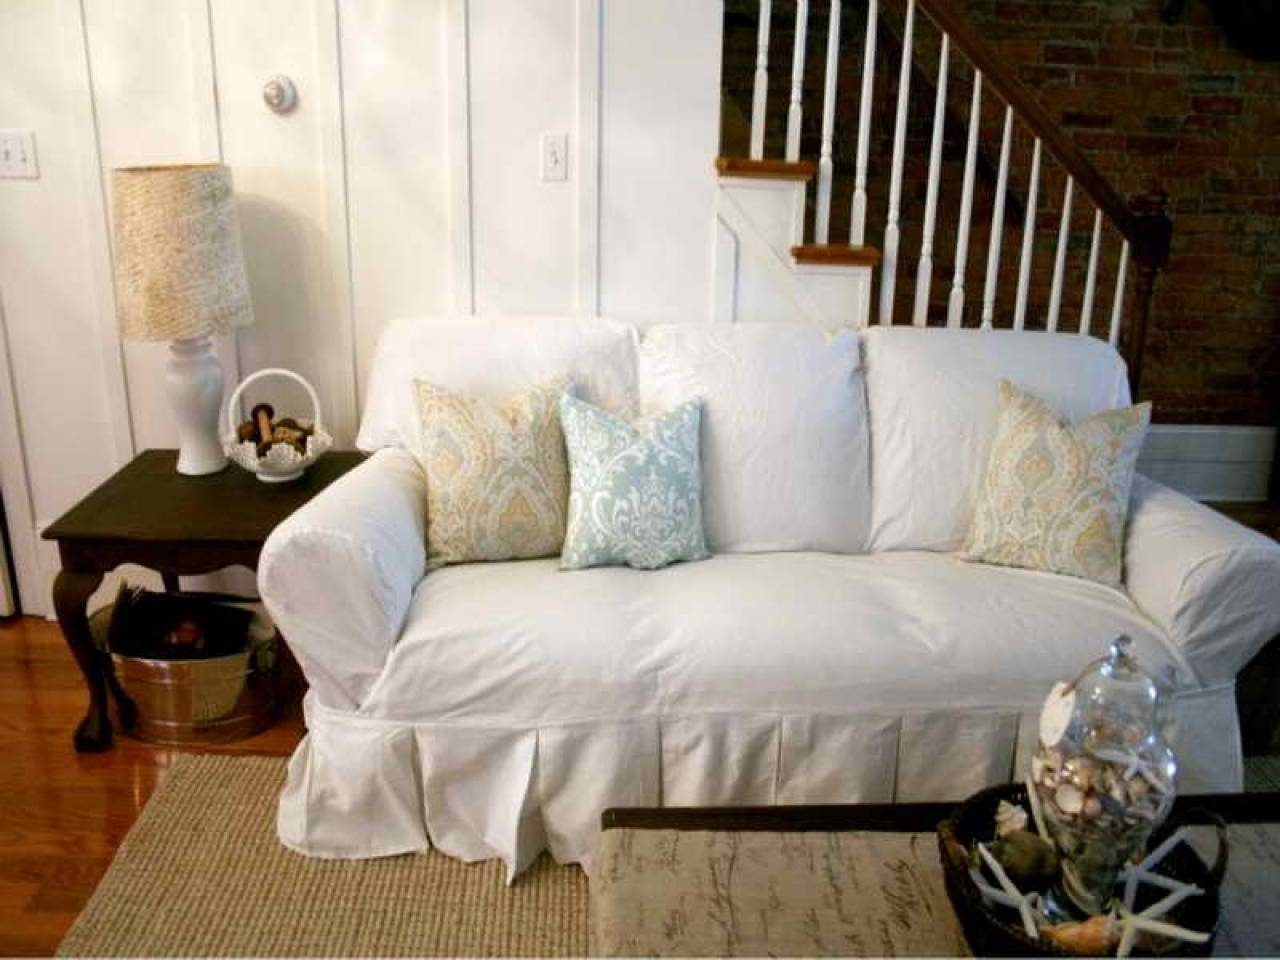 Furniture Home: Shabby Chic Sofa Slipcovers White Sofa Slipcovers regarding Shabby Chic Sofa Slipcovers (Image 5 of 15)